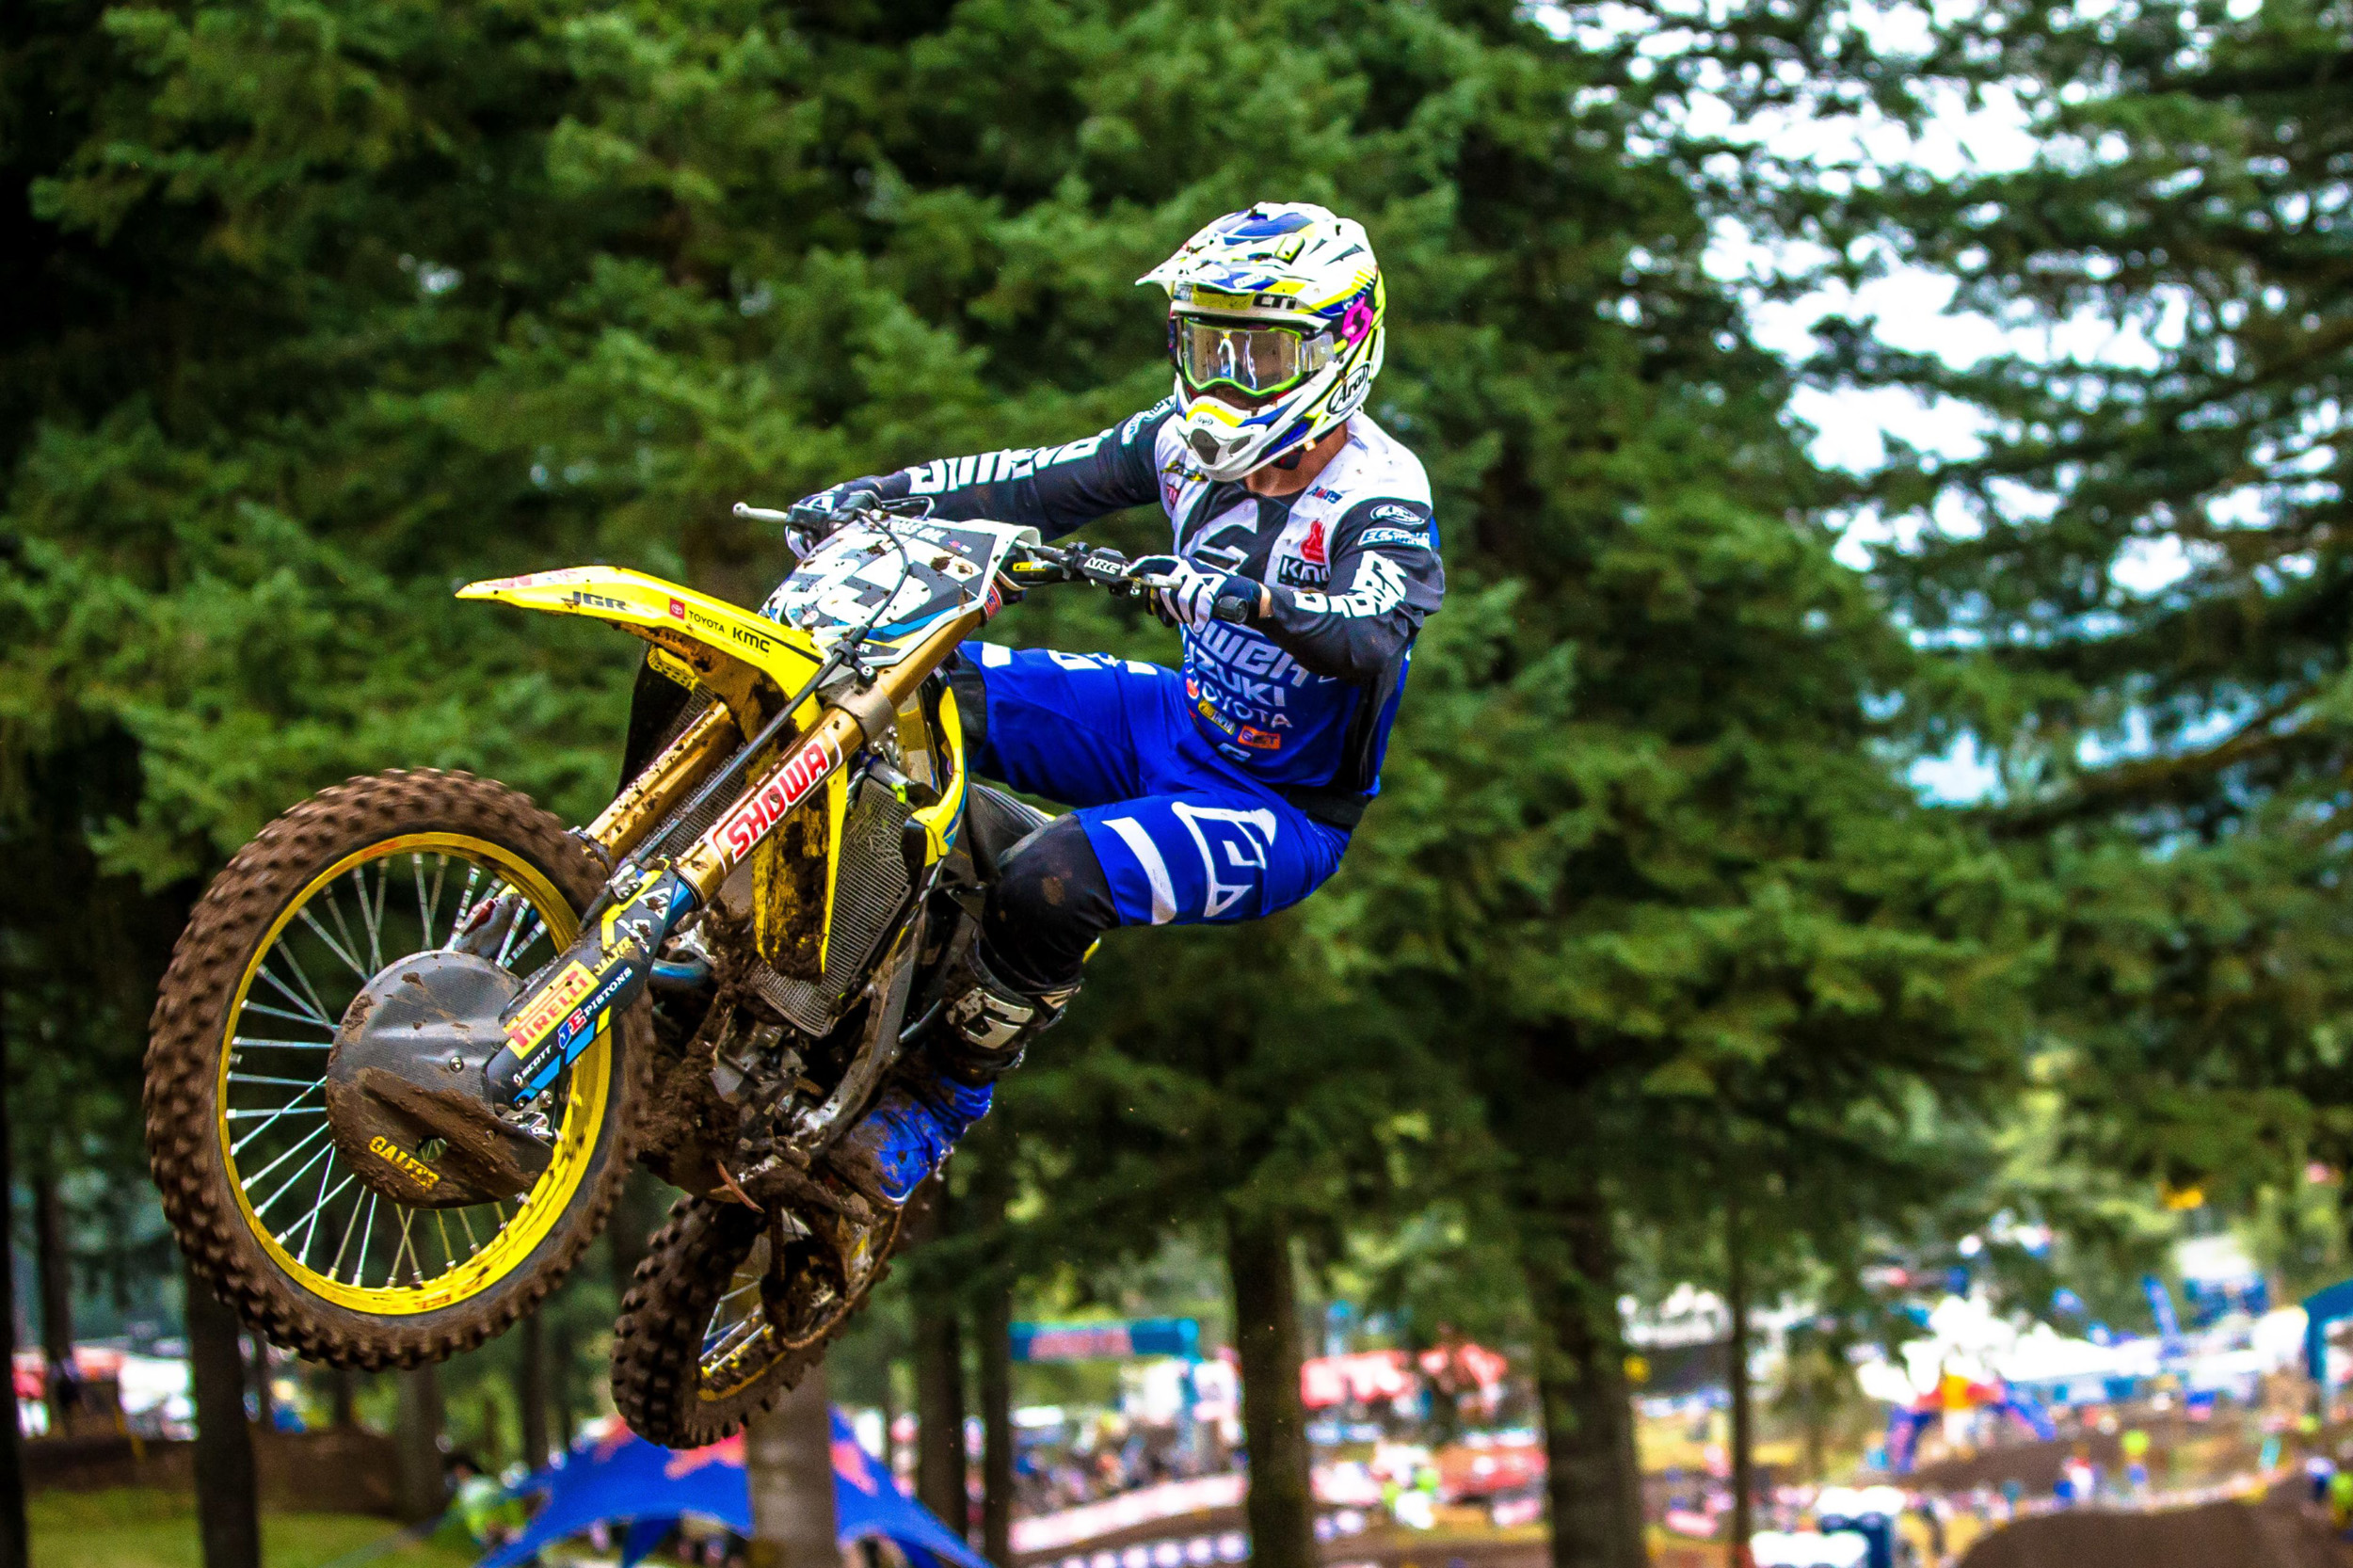 Kyle Peters (#55) soars through the checkered flag on his RM-Z250 - Washougal National